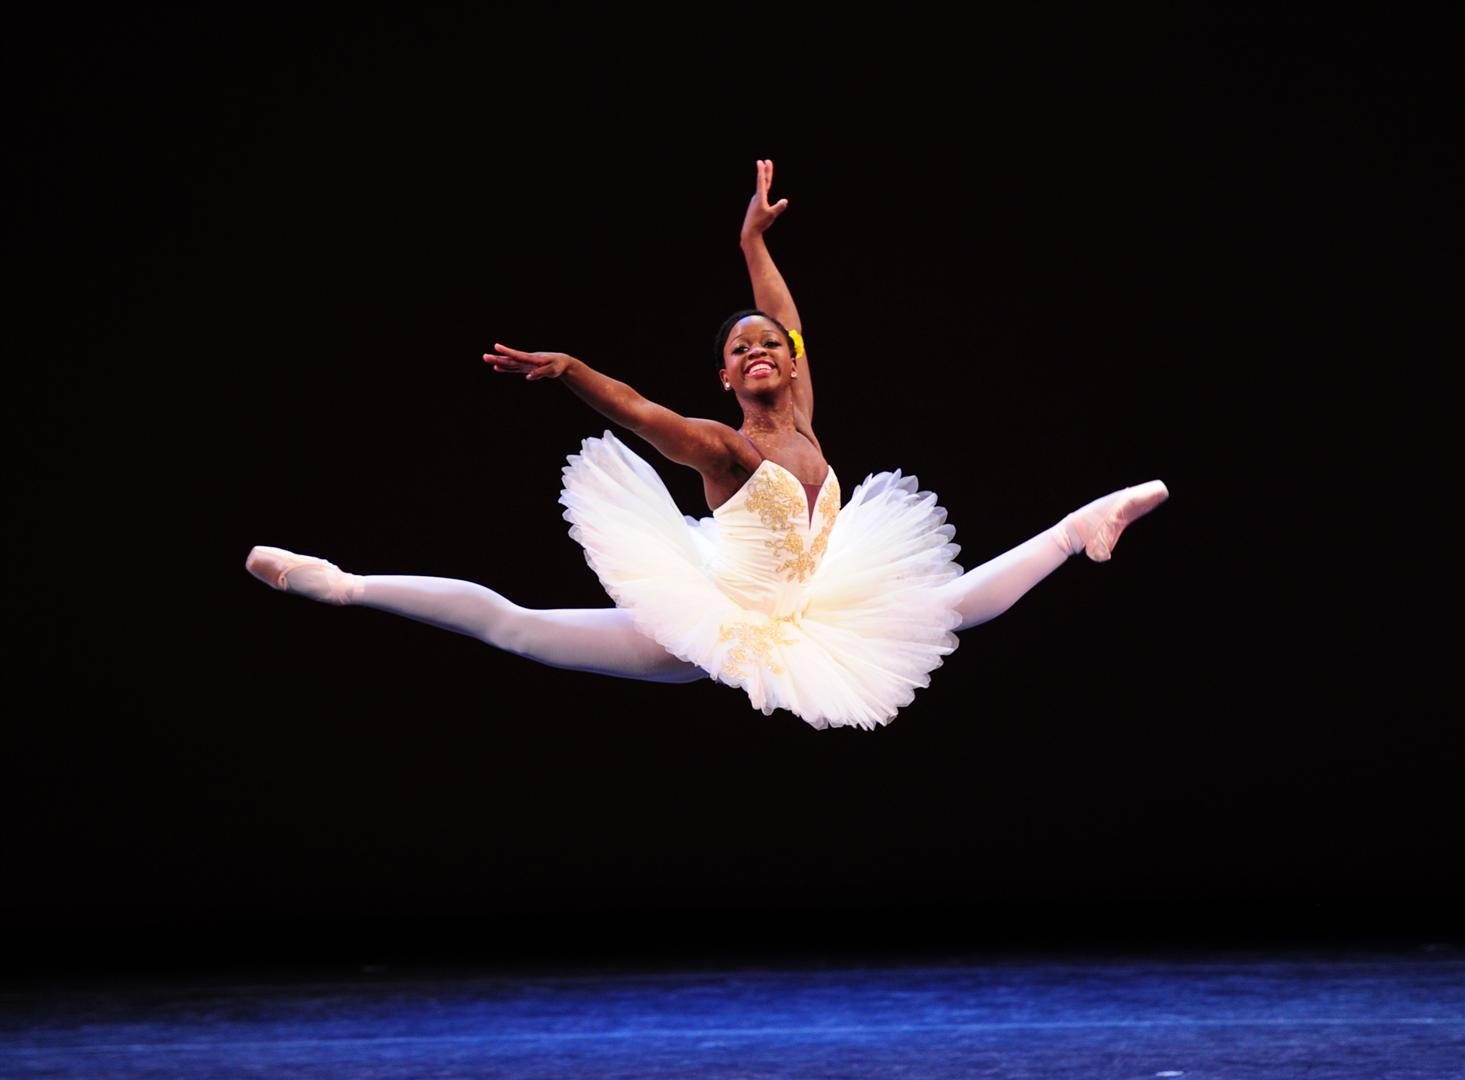 Michaela-DePrince-performs-in-the-2010-YAGP-Finals-Photo_-Siggur_VAM